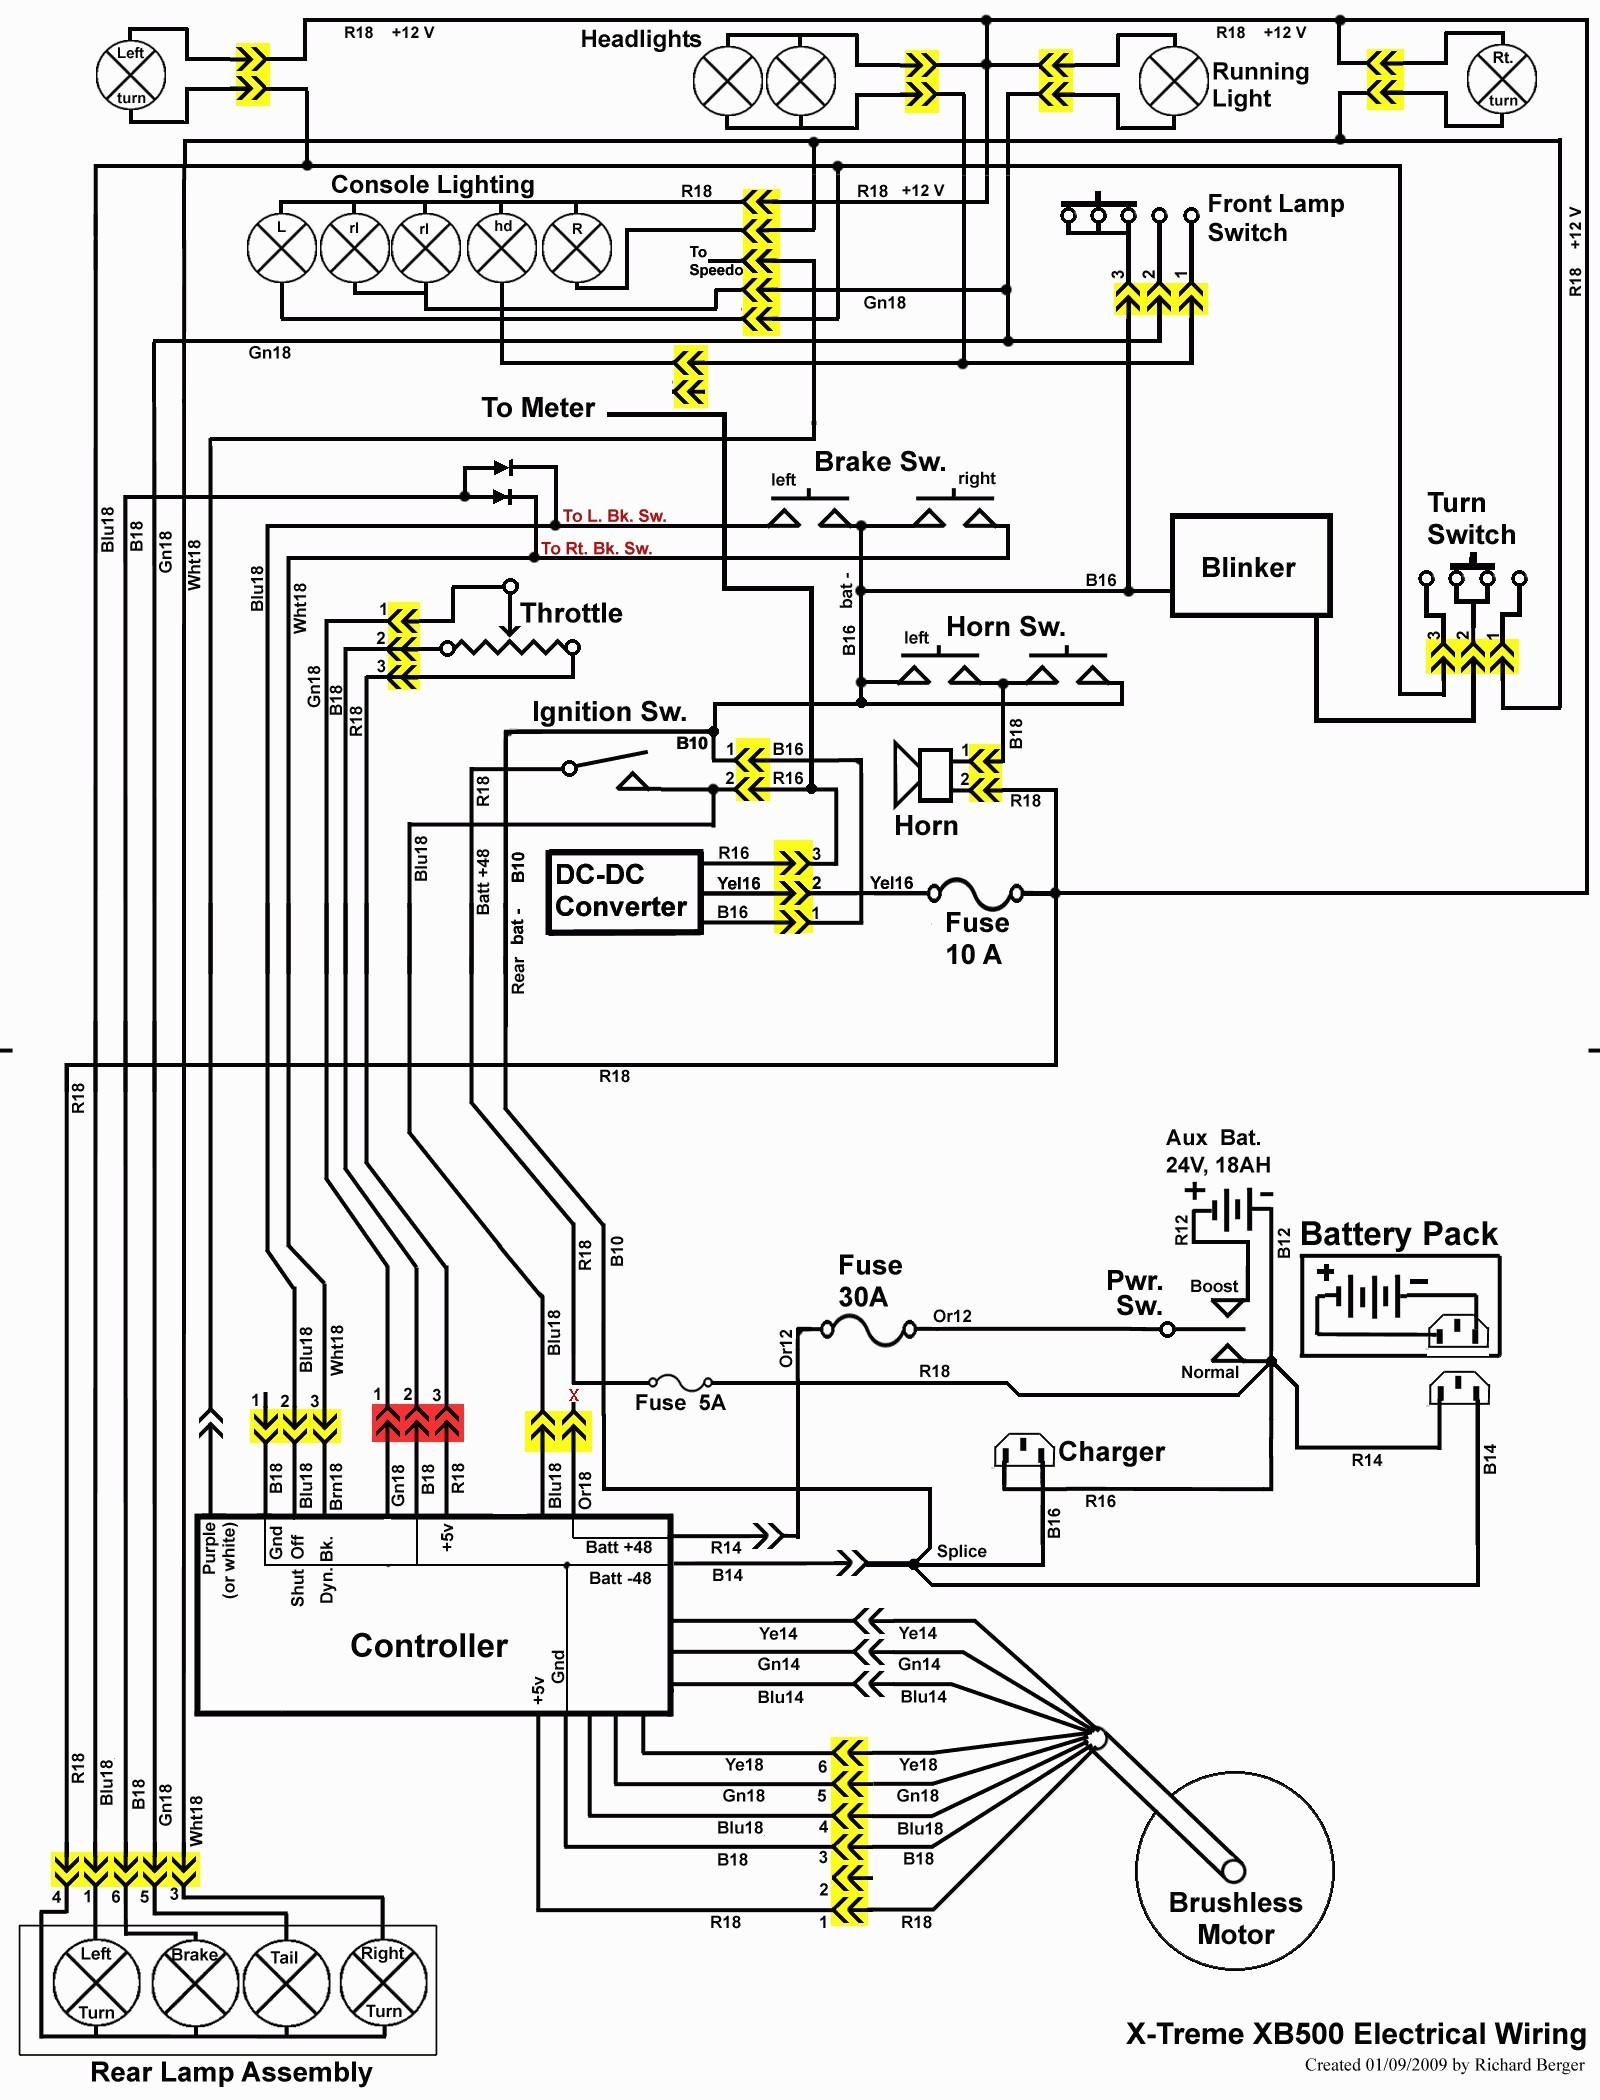 Melex 112 Wiring Diagram Wire Management Wiring Diagram